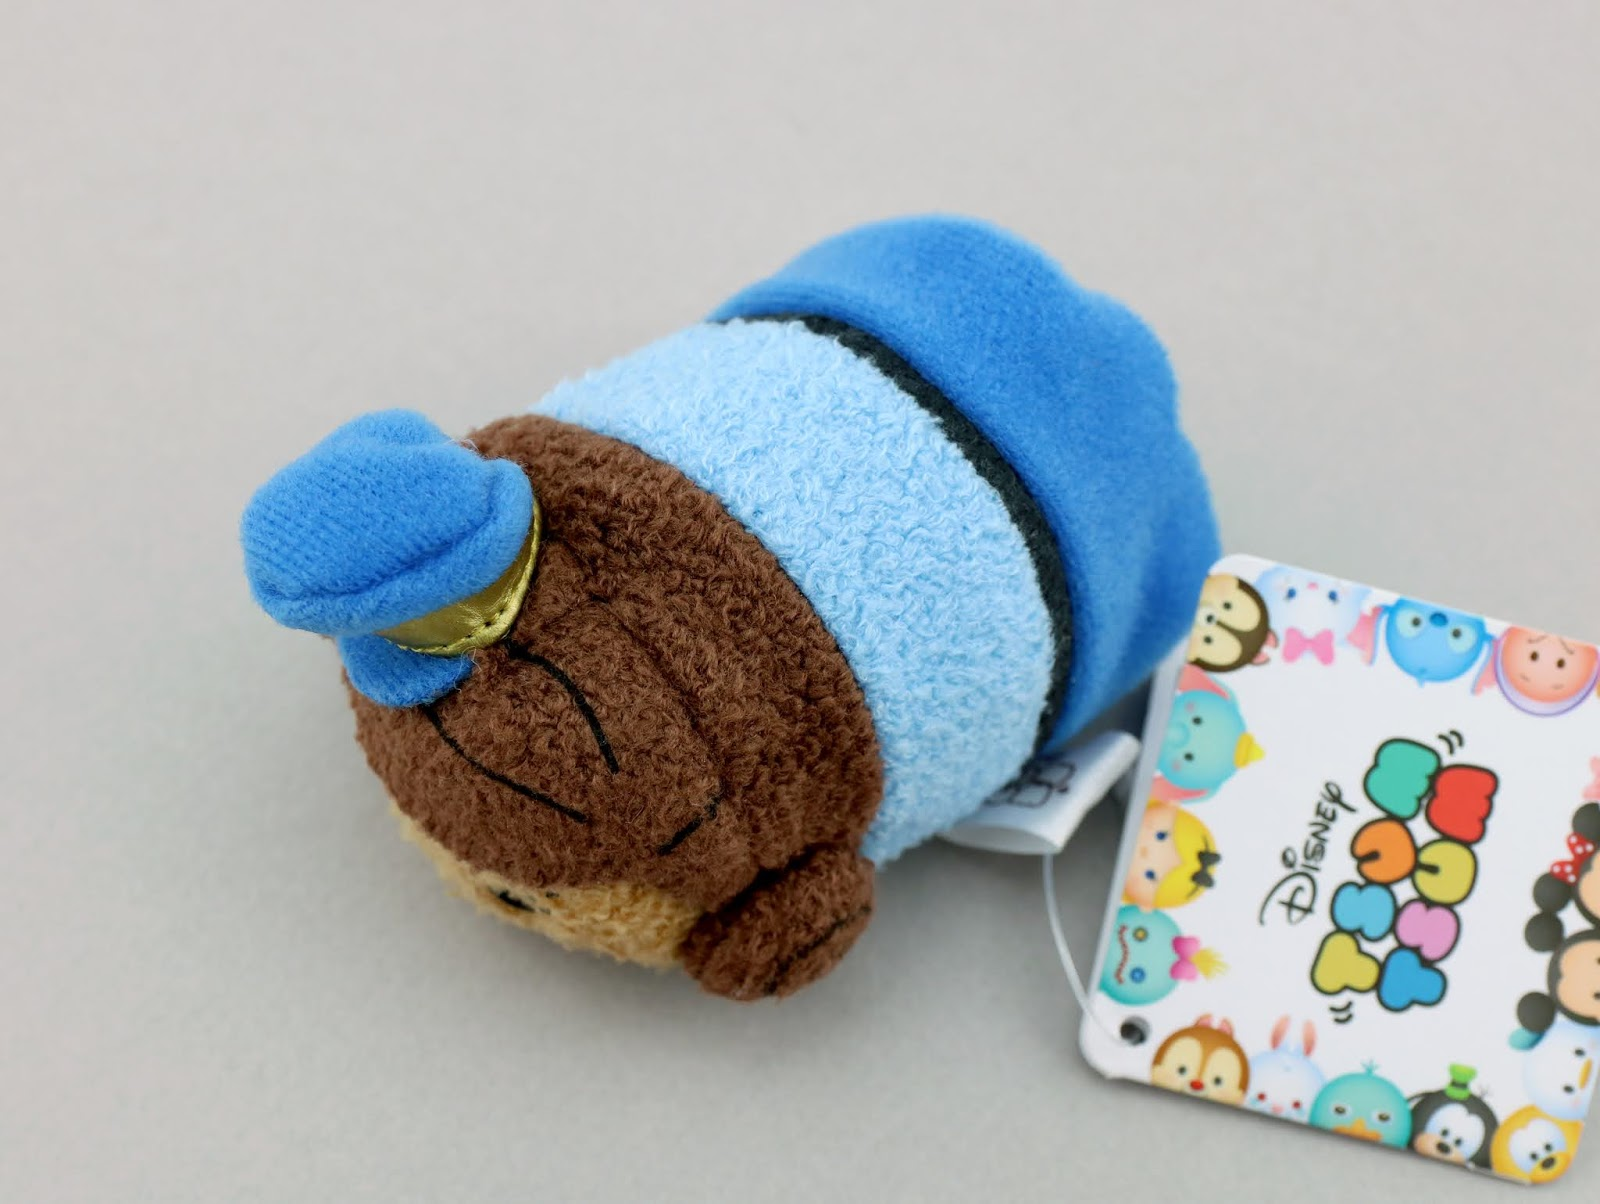 toy story 4 tsum tsums giggle